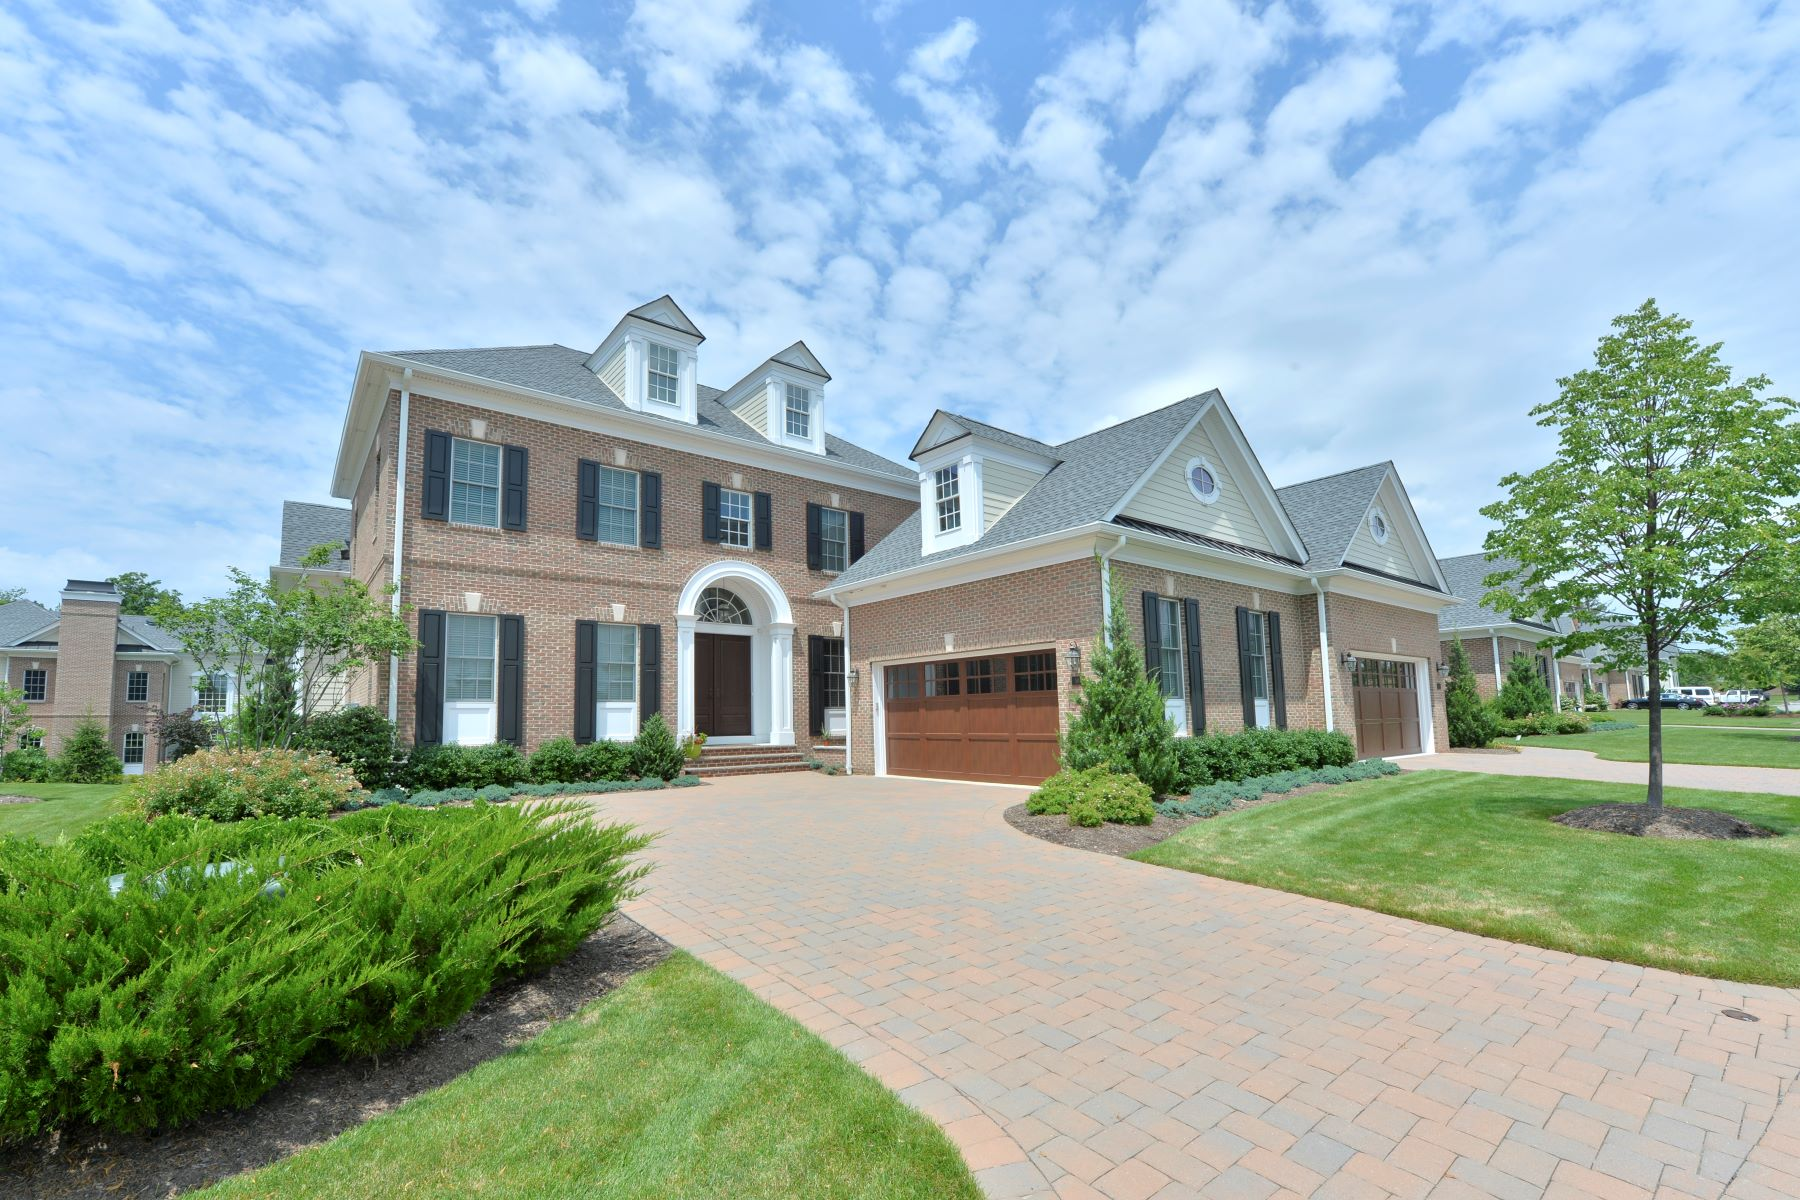 Townhouse for Sale at Prestigious End Unit 101 Cortland Dr, Saddle River, New Jersey 07458 United States